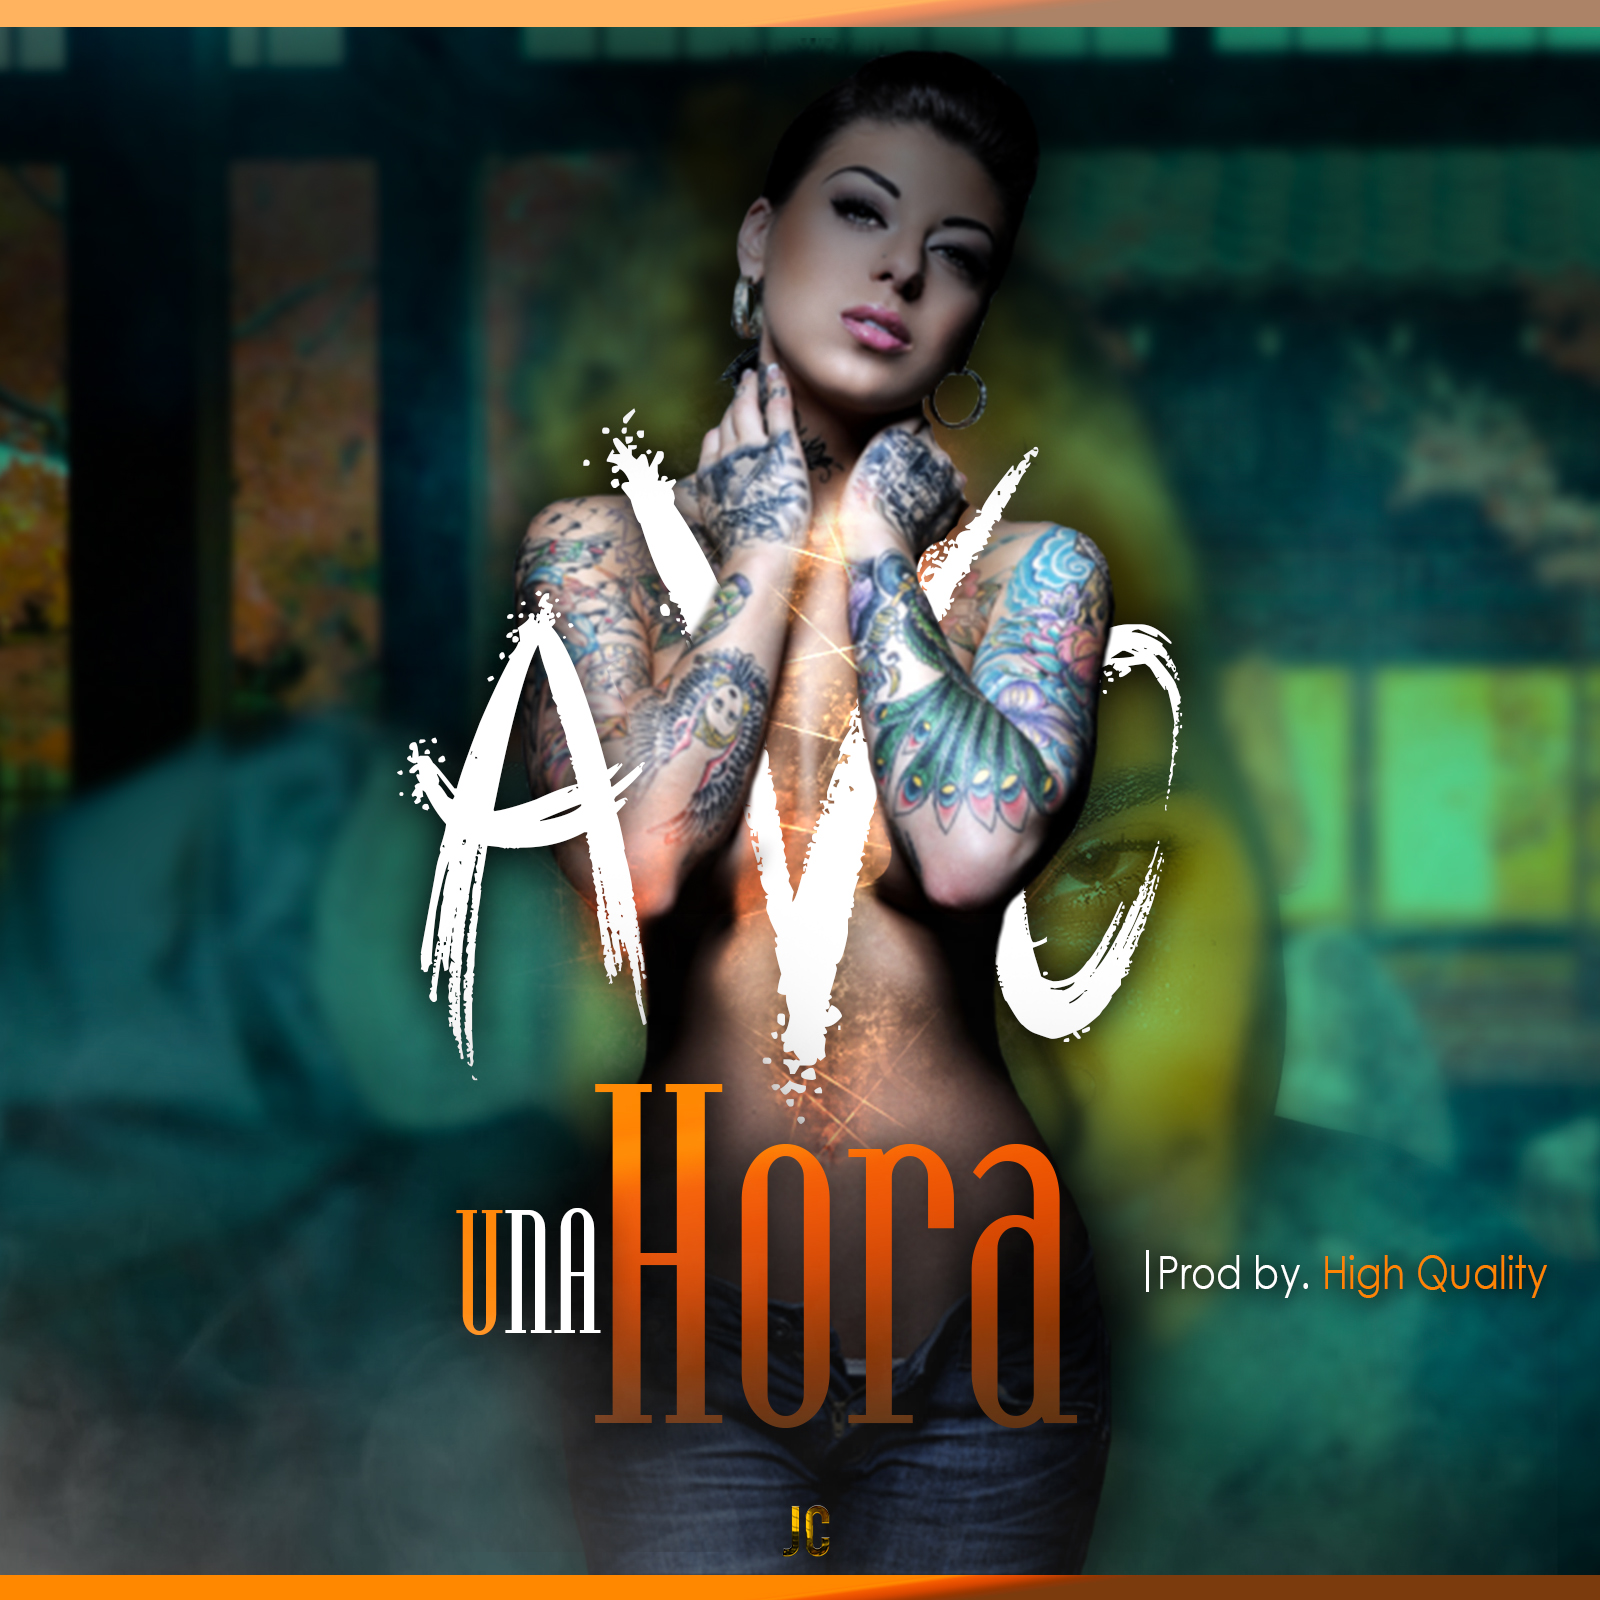 Art for UNA HORA by AVO